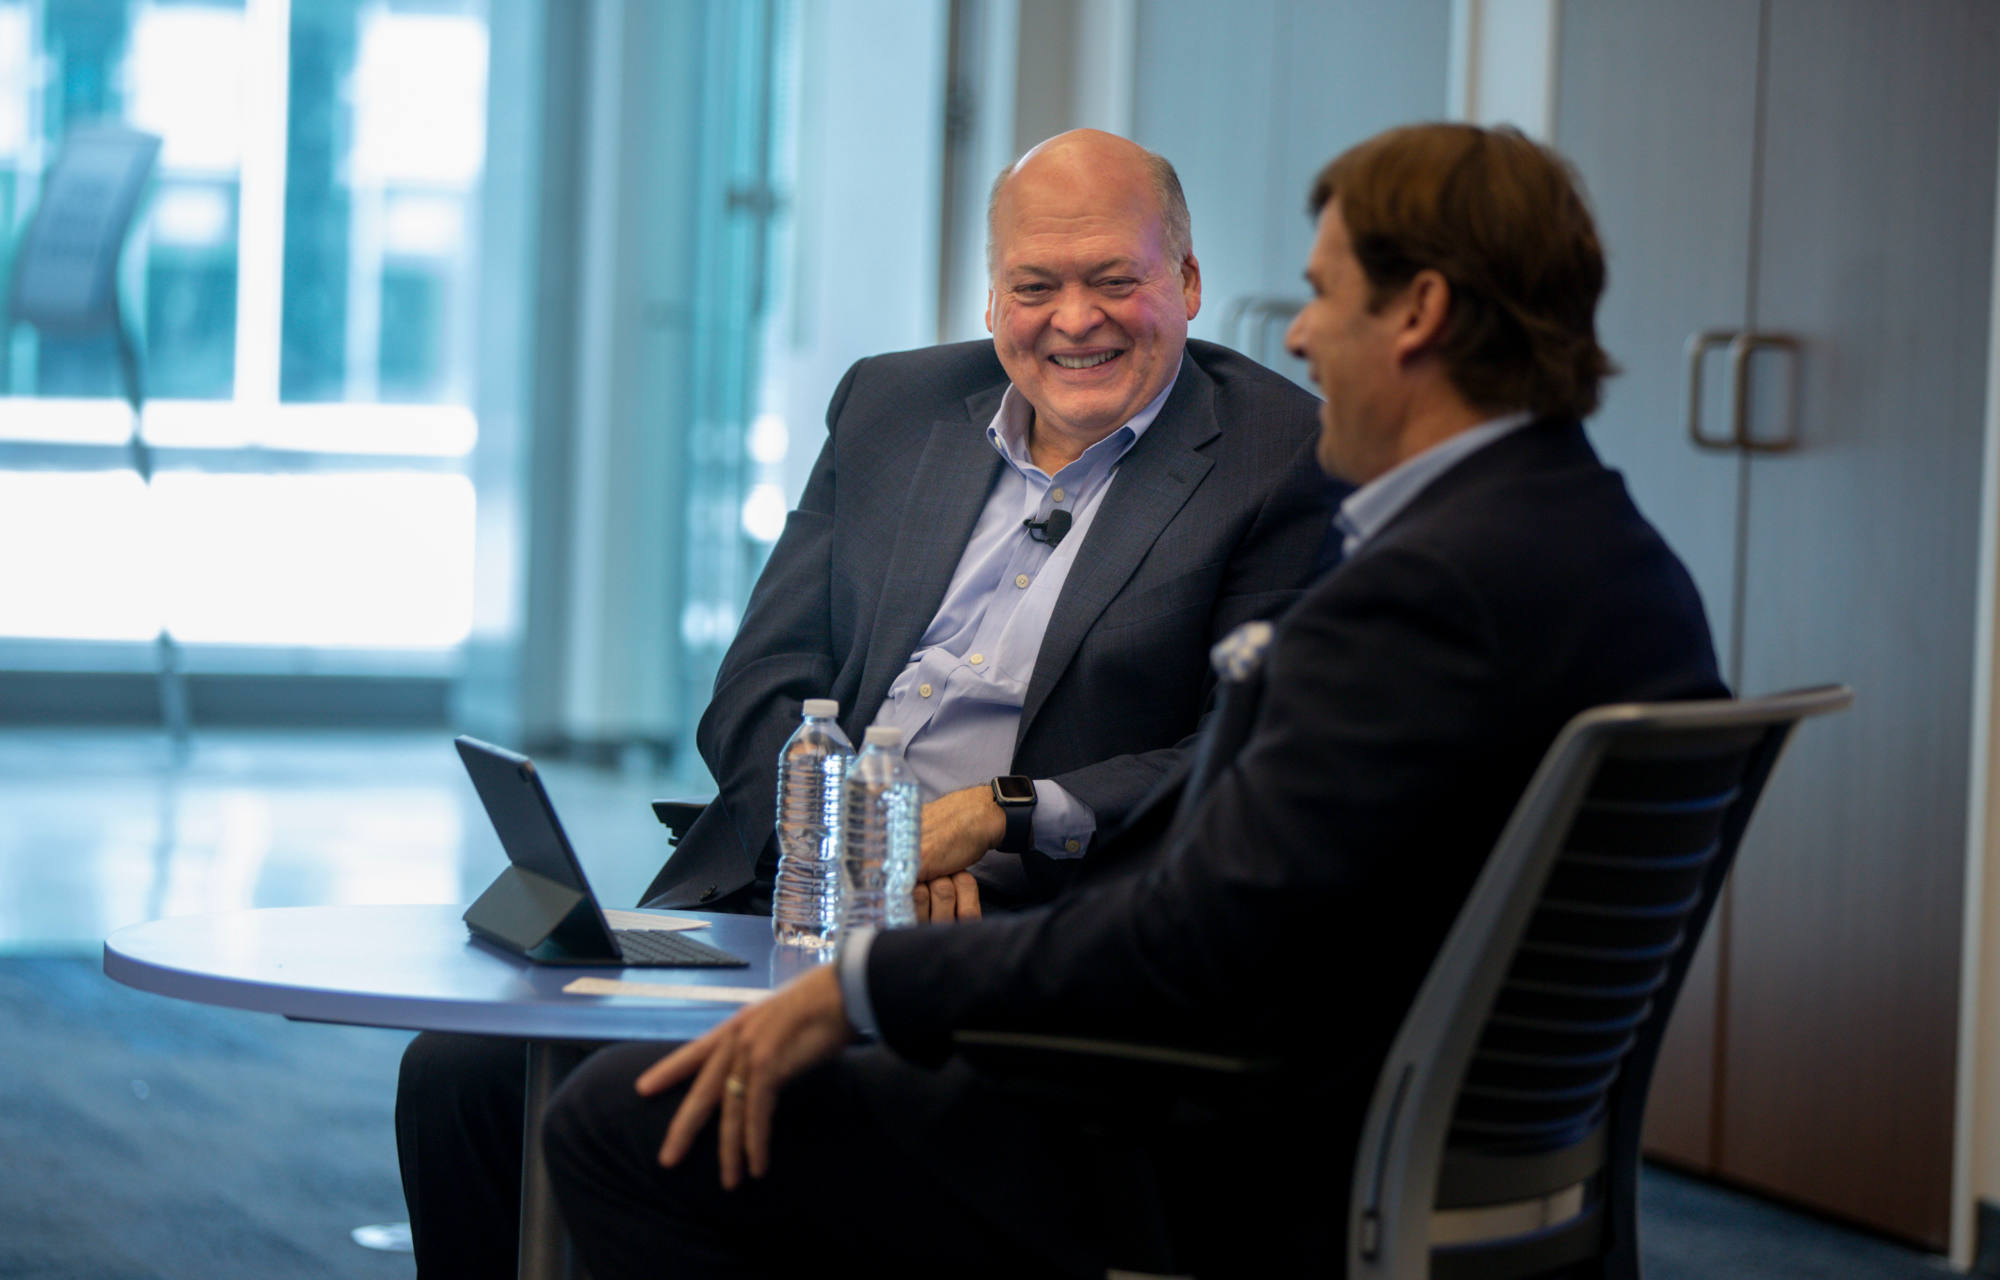 Ford Announces Jim Hackett to Retire as President and CEO